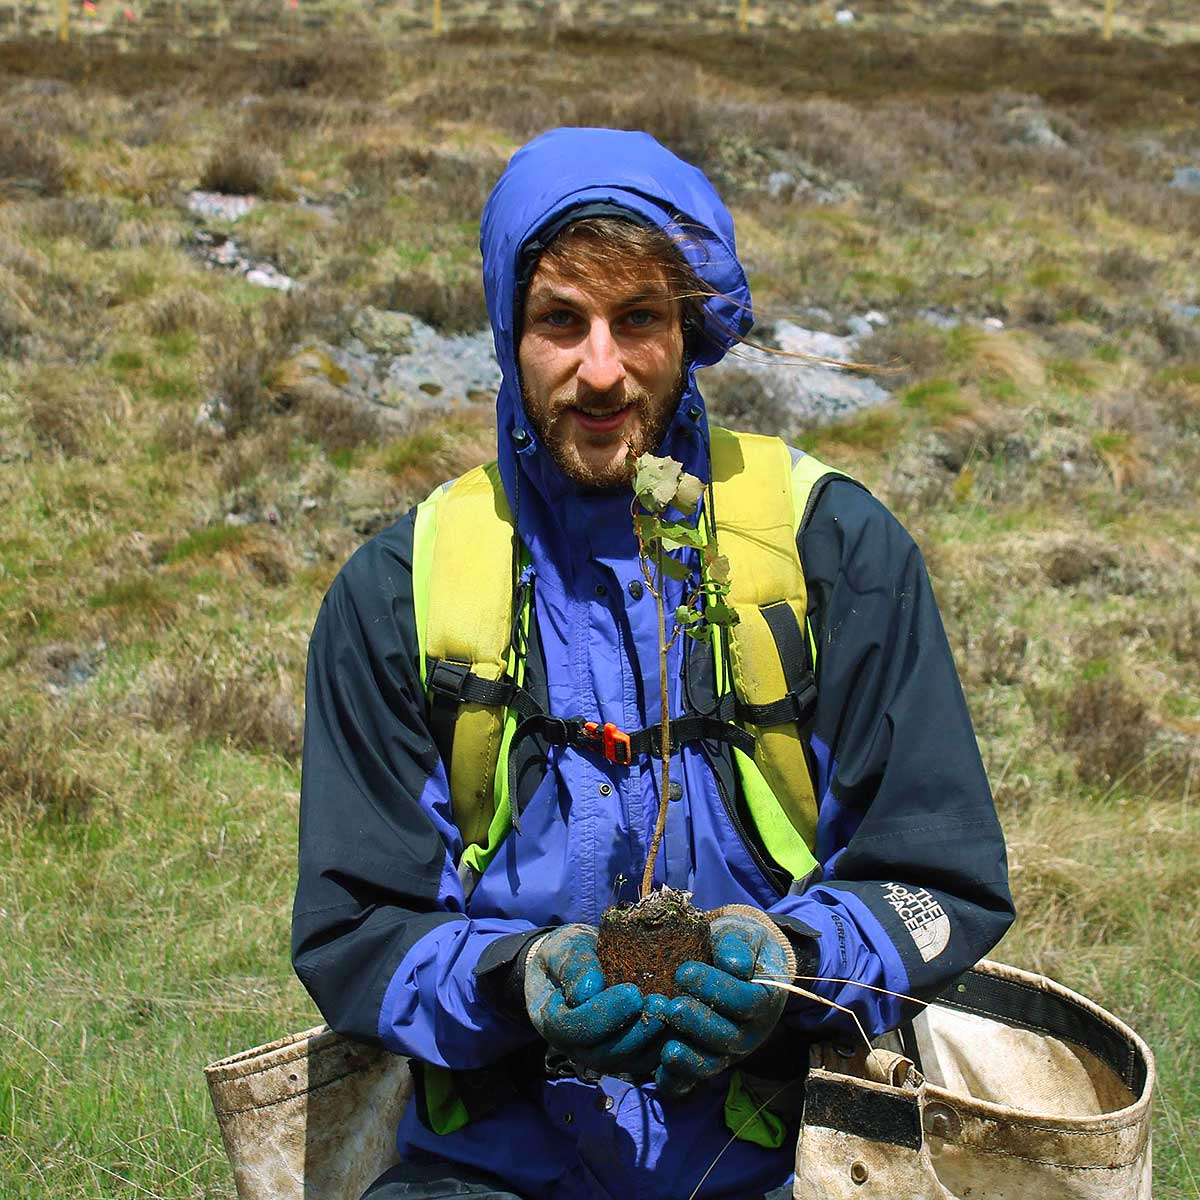 Return To Nature's founder, Will Brown, holding a sapling whilst out tree planting.